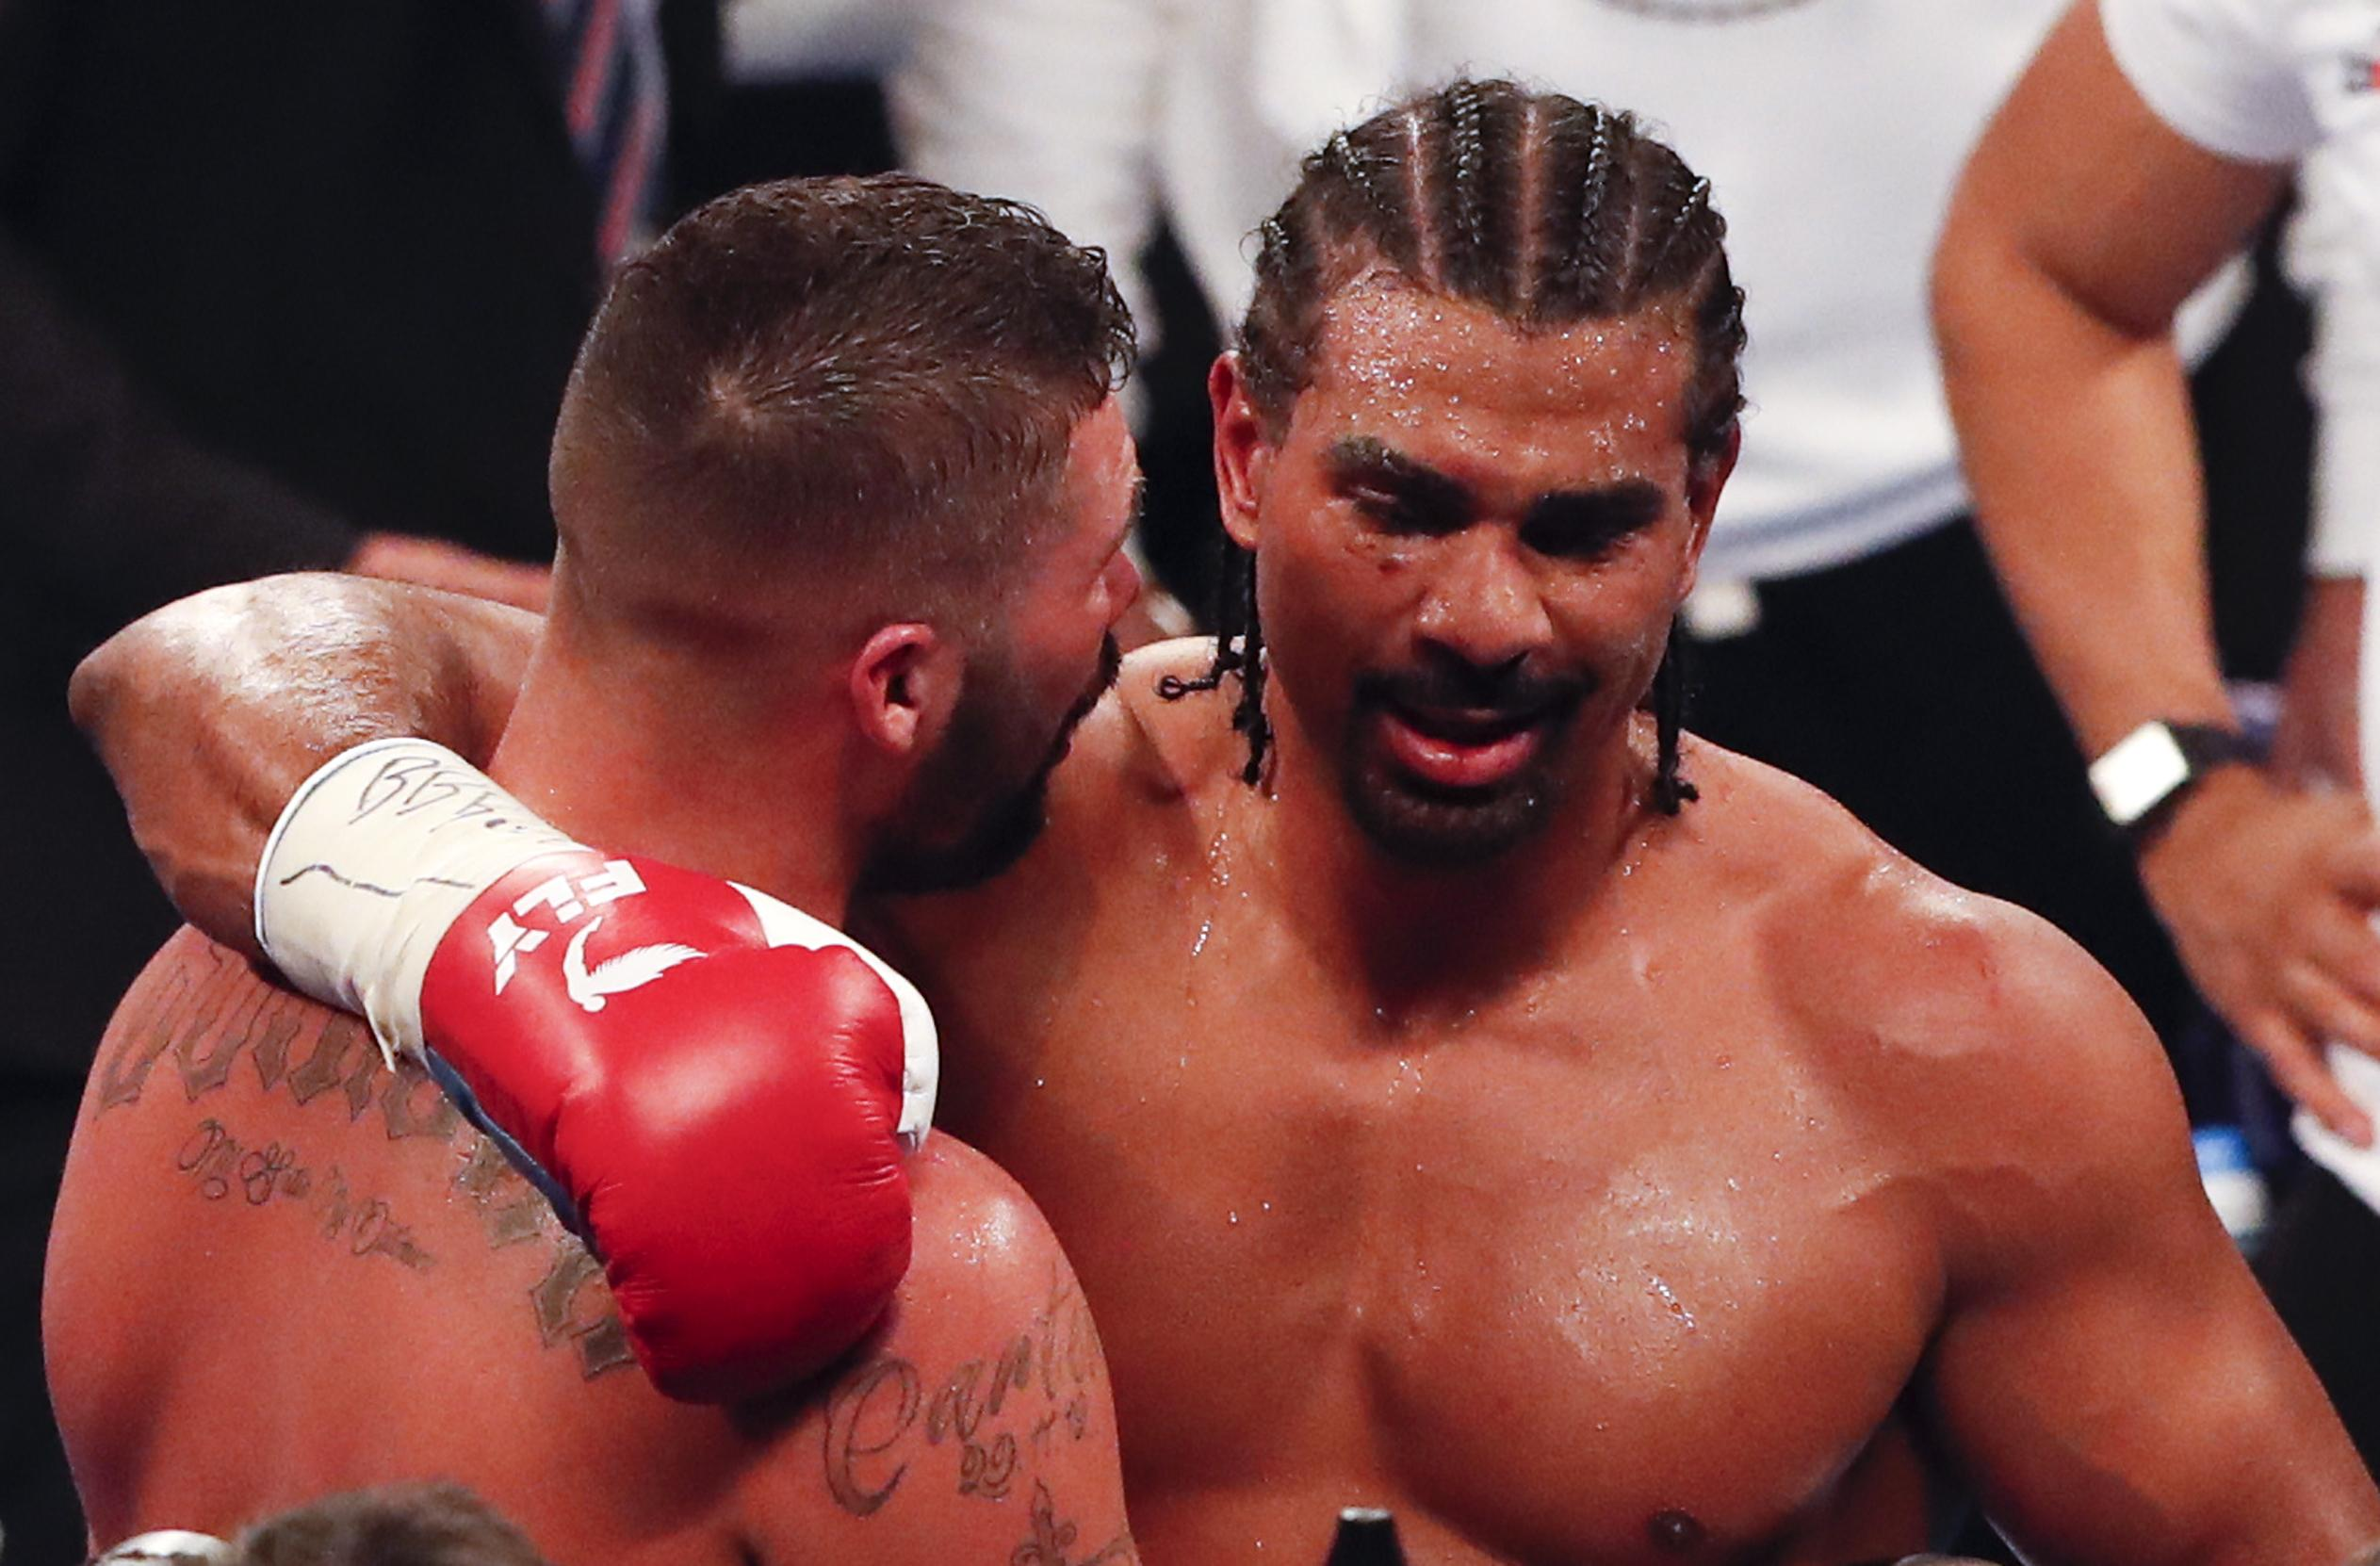 The 32nd and final fight of Haye's career ended in defeat against Tony Bellew, leaving him with a 28-4 career record